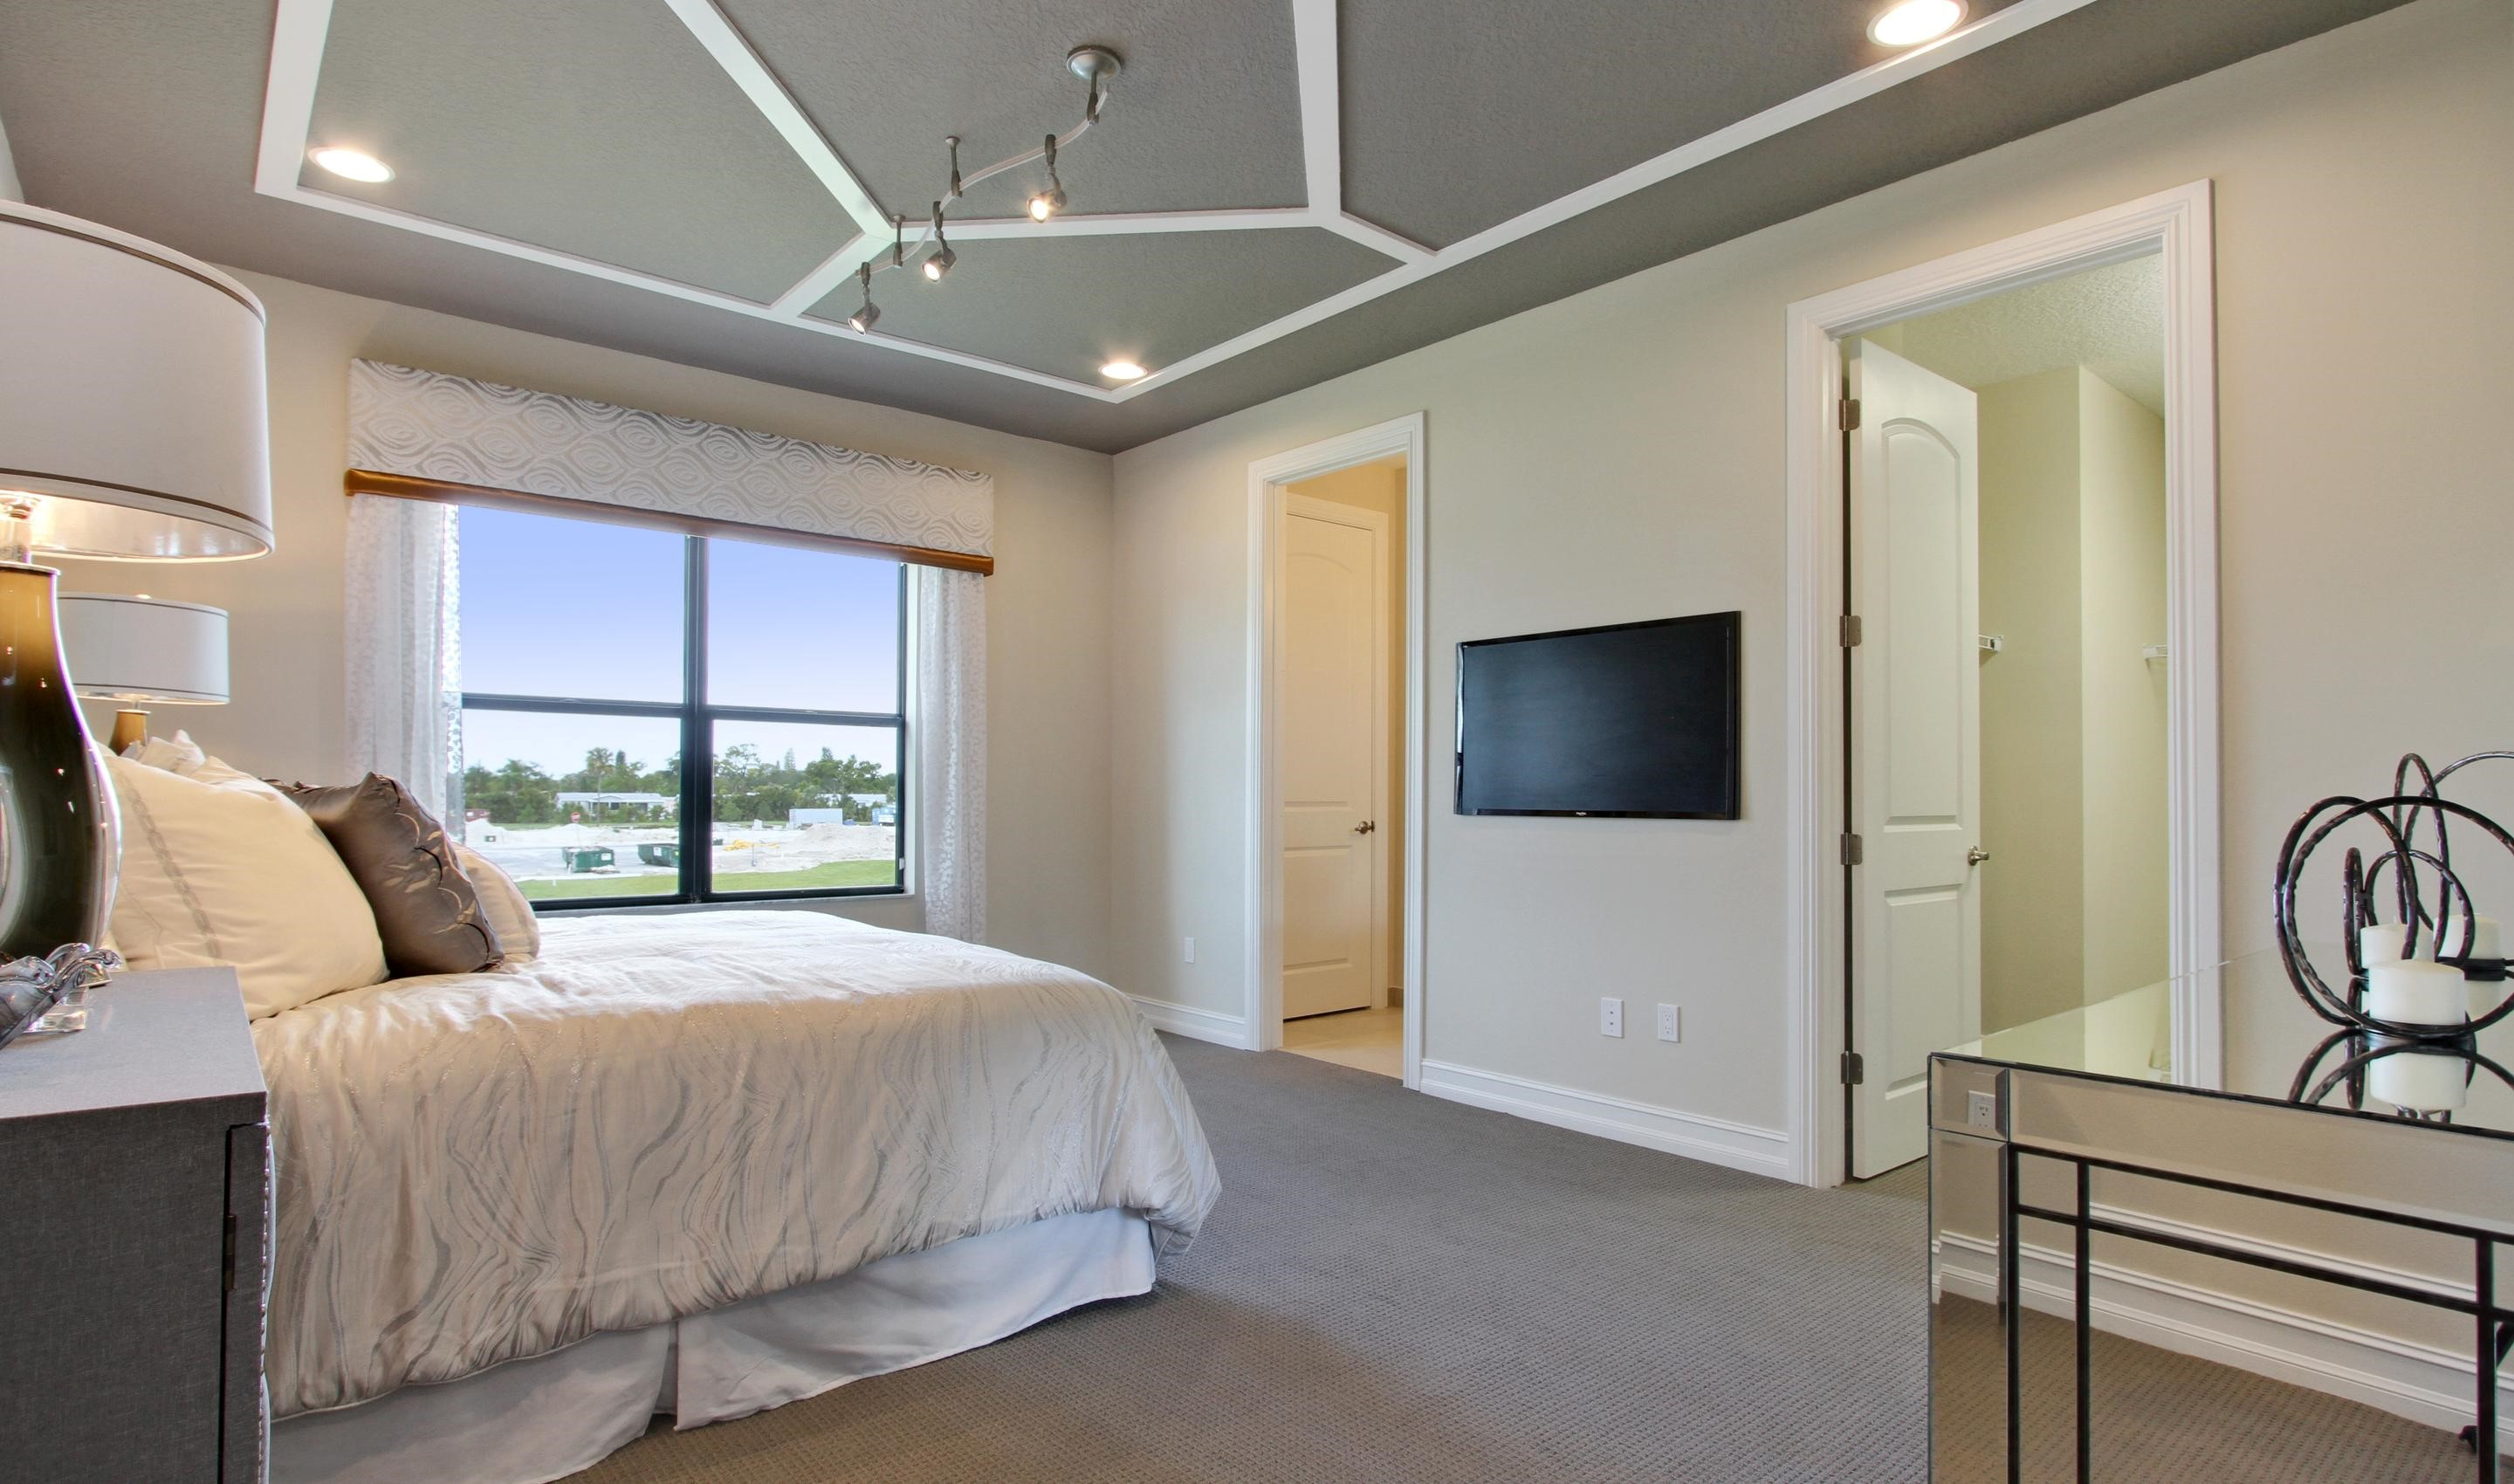 Owner's suite with walk-in closet